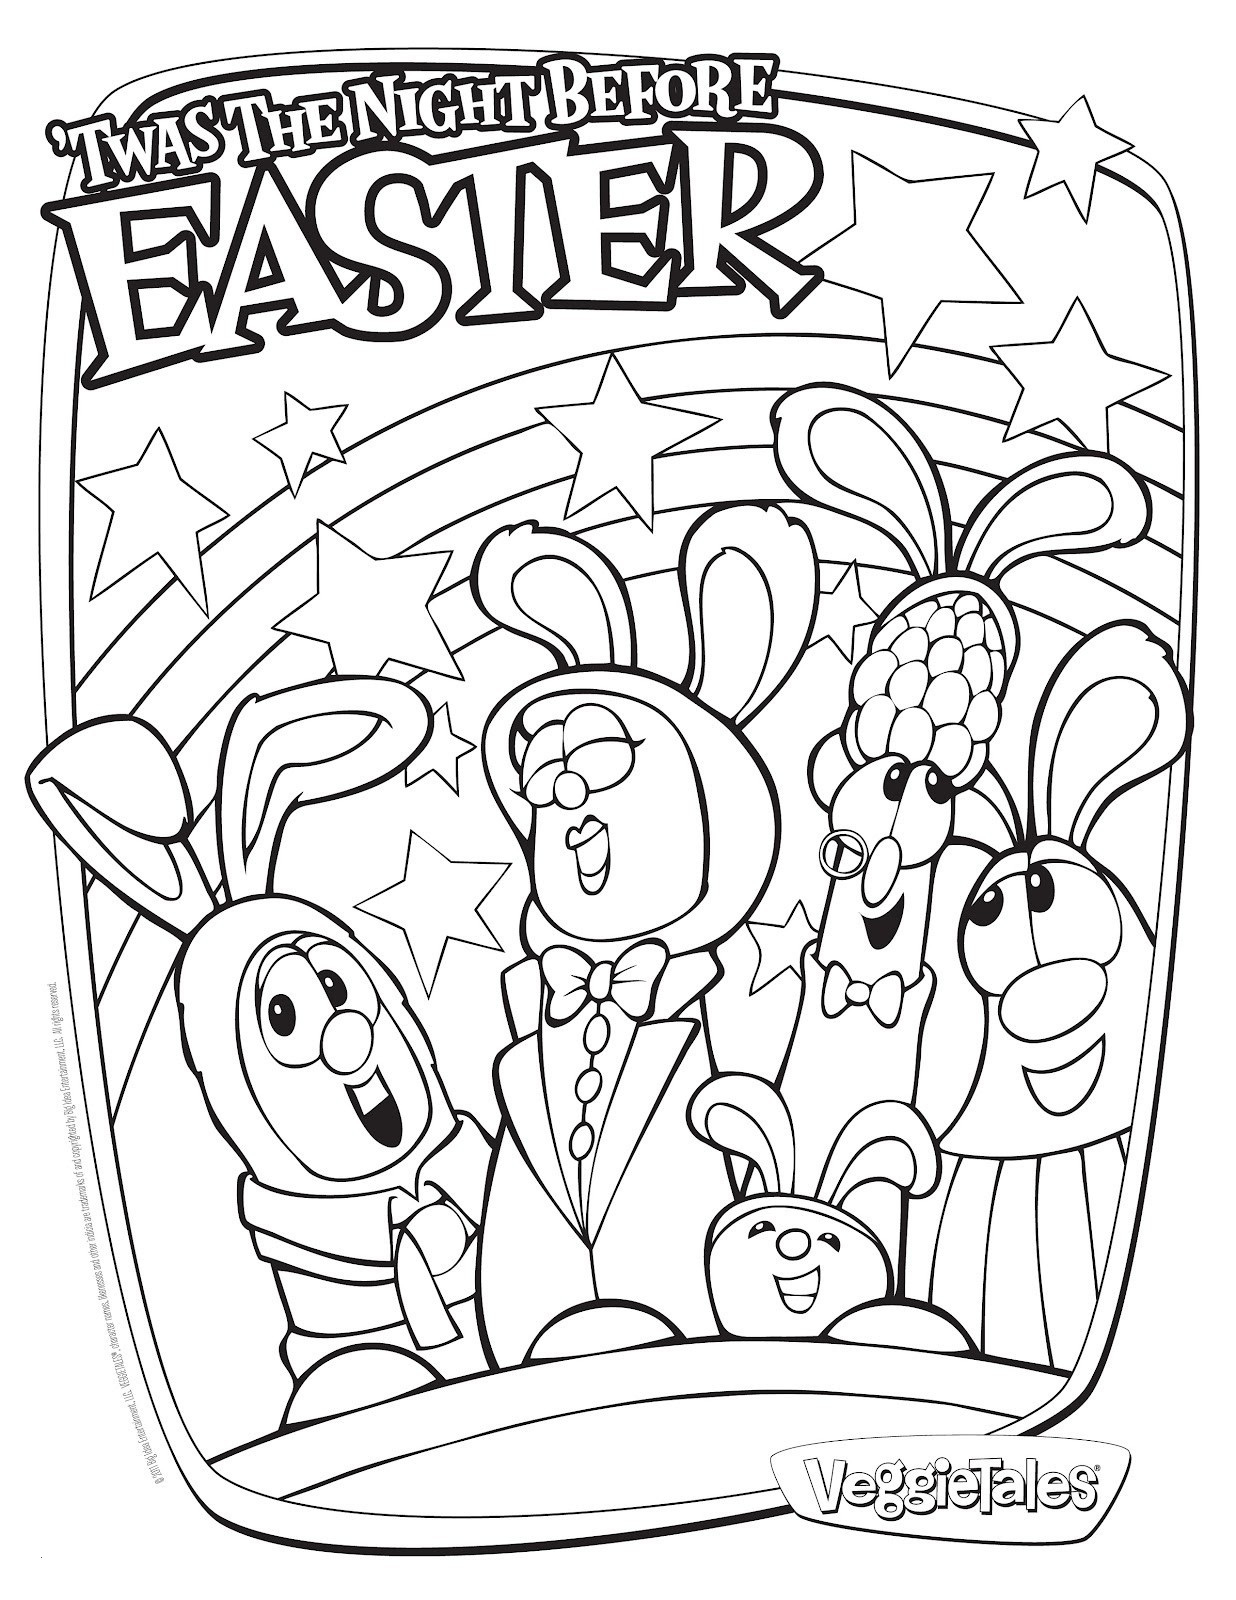 Coloring Pages for Palm Sunday  to Print 13n - Free For kids